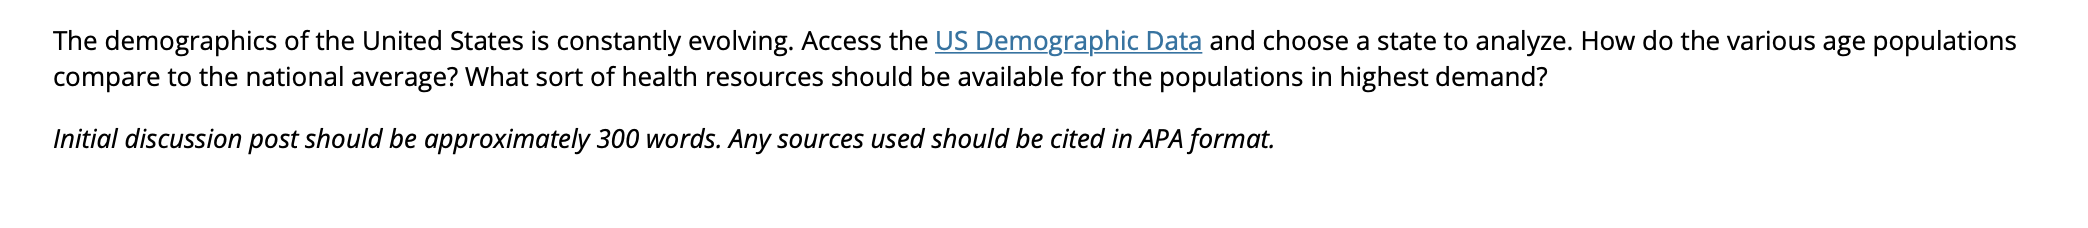 The demographics of the United States is constantly evolving. Access the US Demographic Data and choose a state to analyze. H